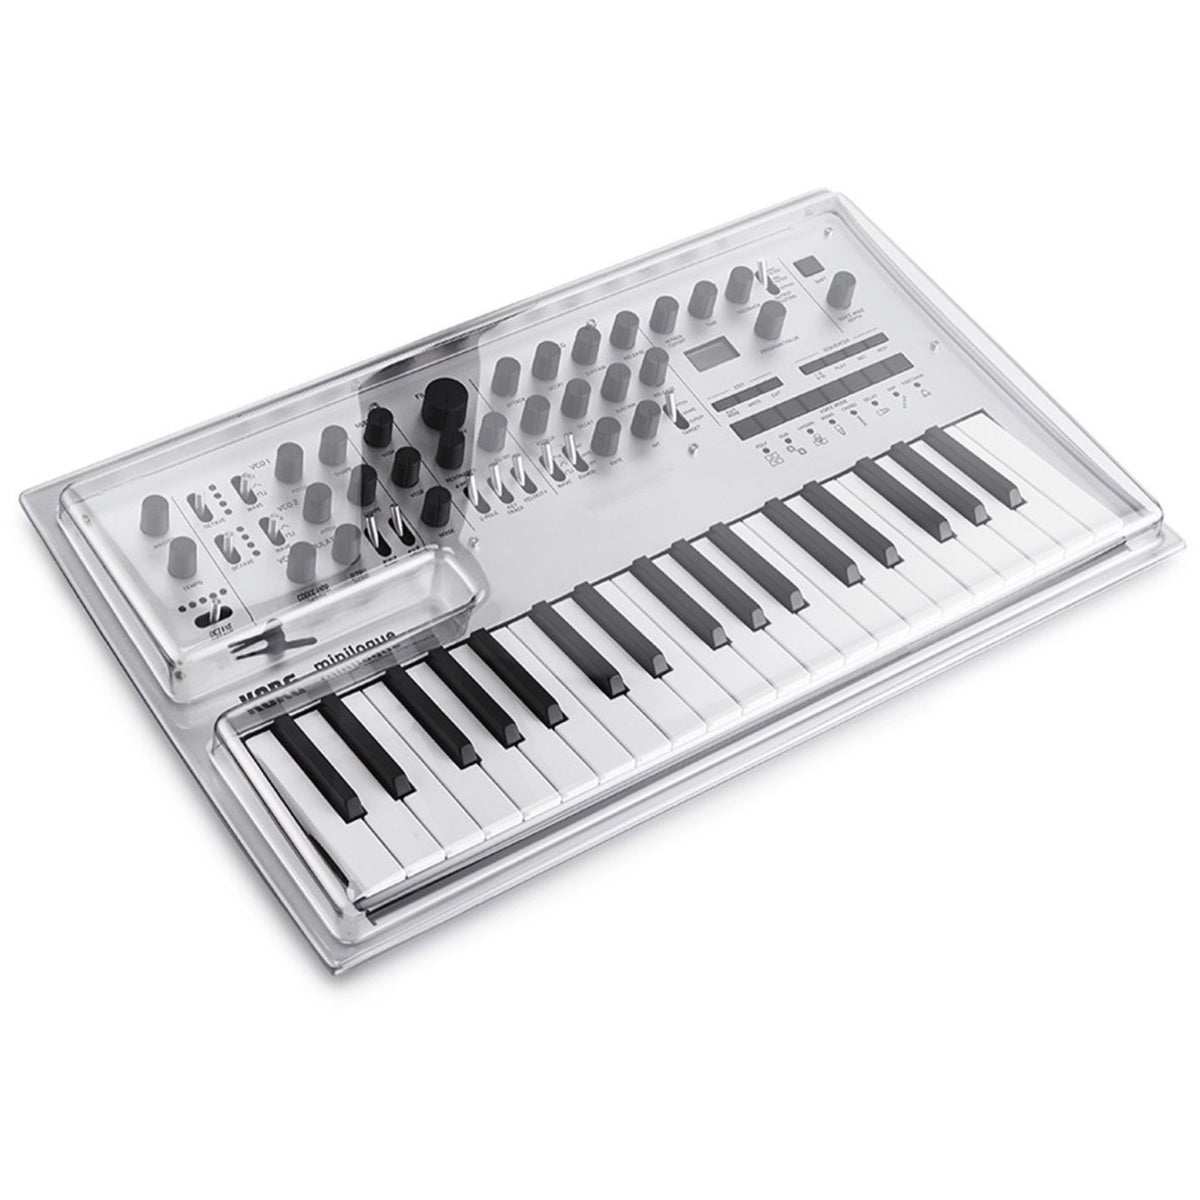 Decksaver Cover for Korg Minilogue